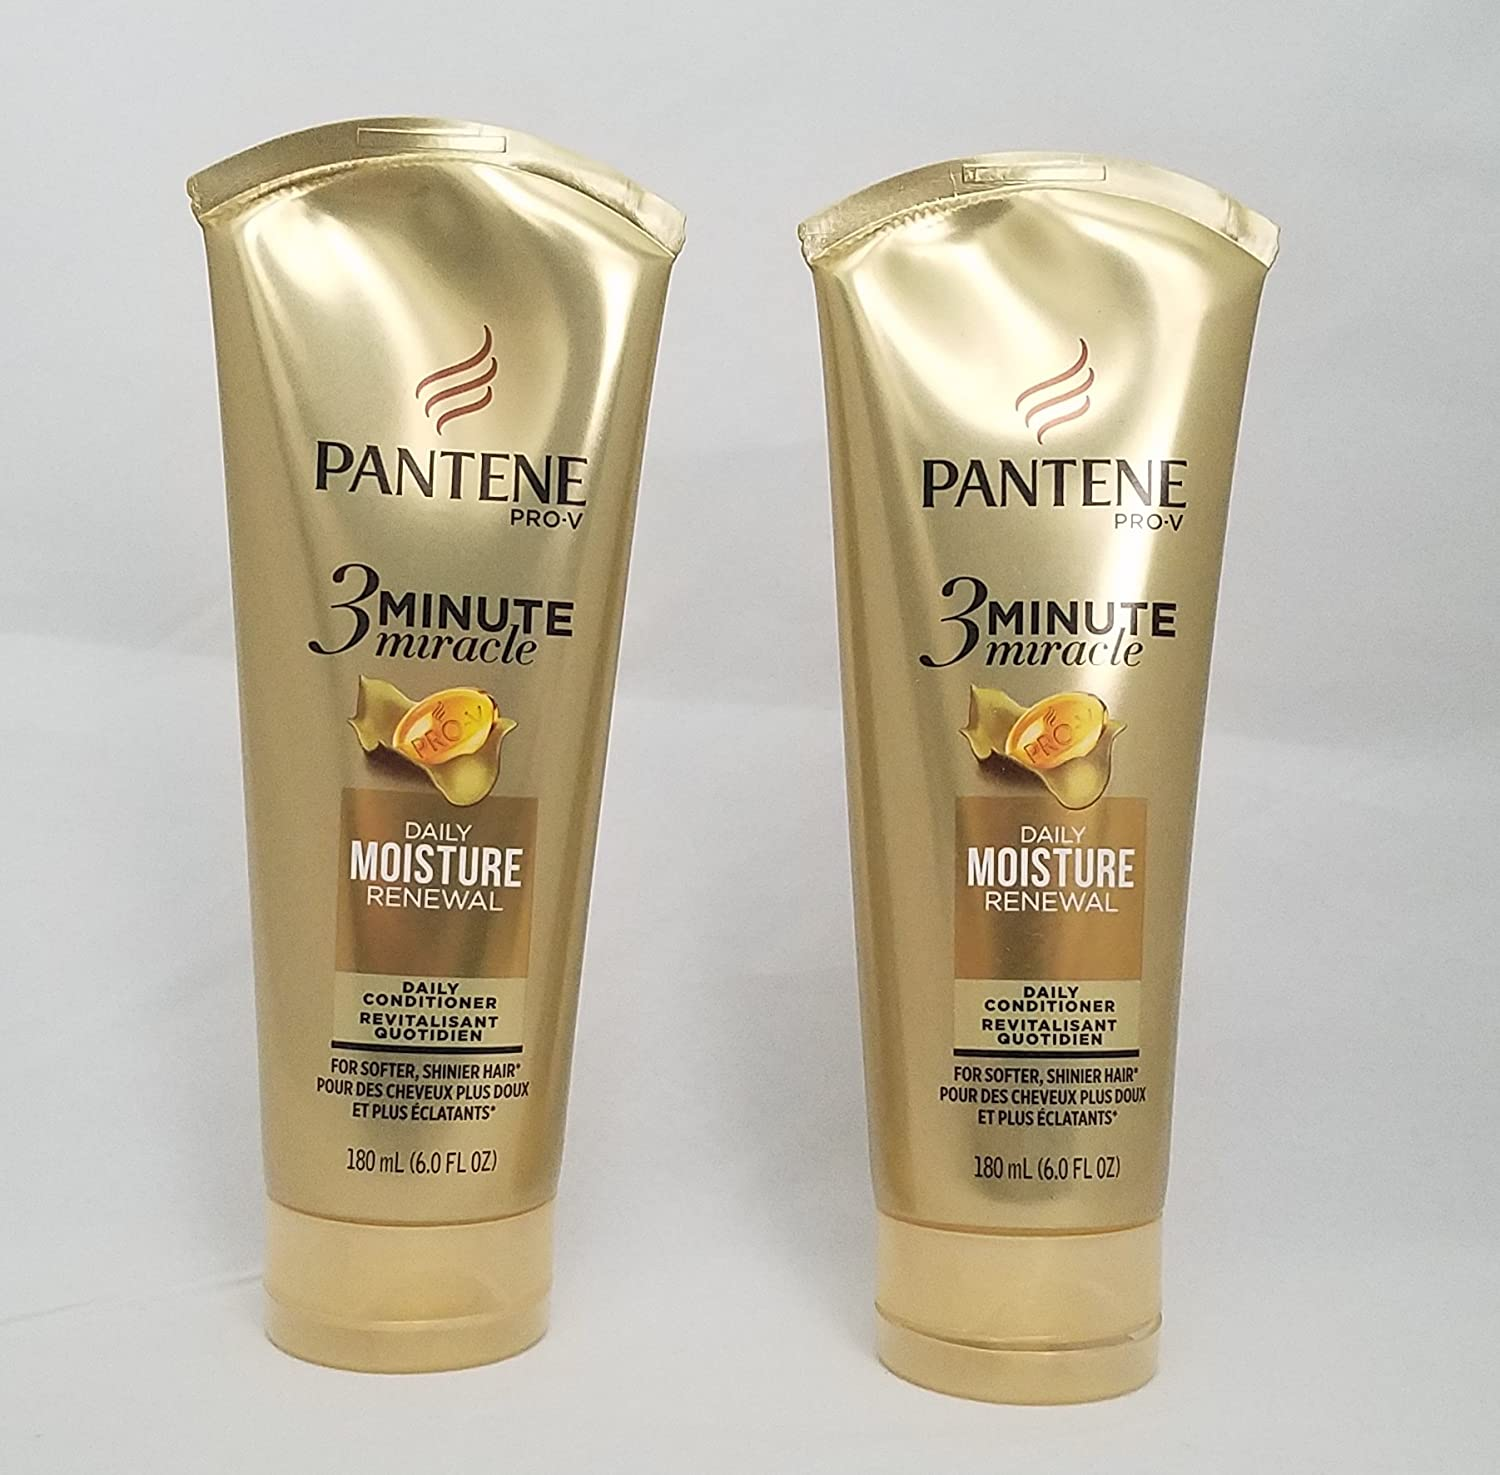 Pantene Moisture Renewal 3 Minute Miracle Deep Conditioner, 6 Fluid Ounce, Pack of 2